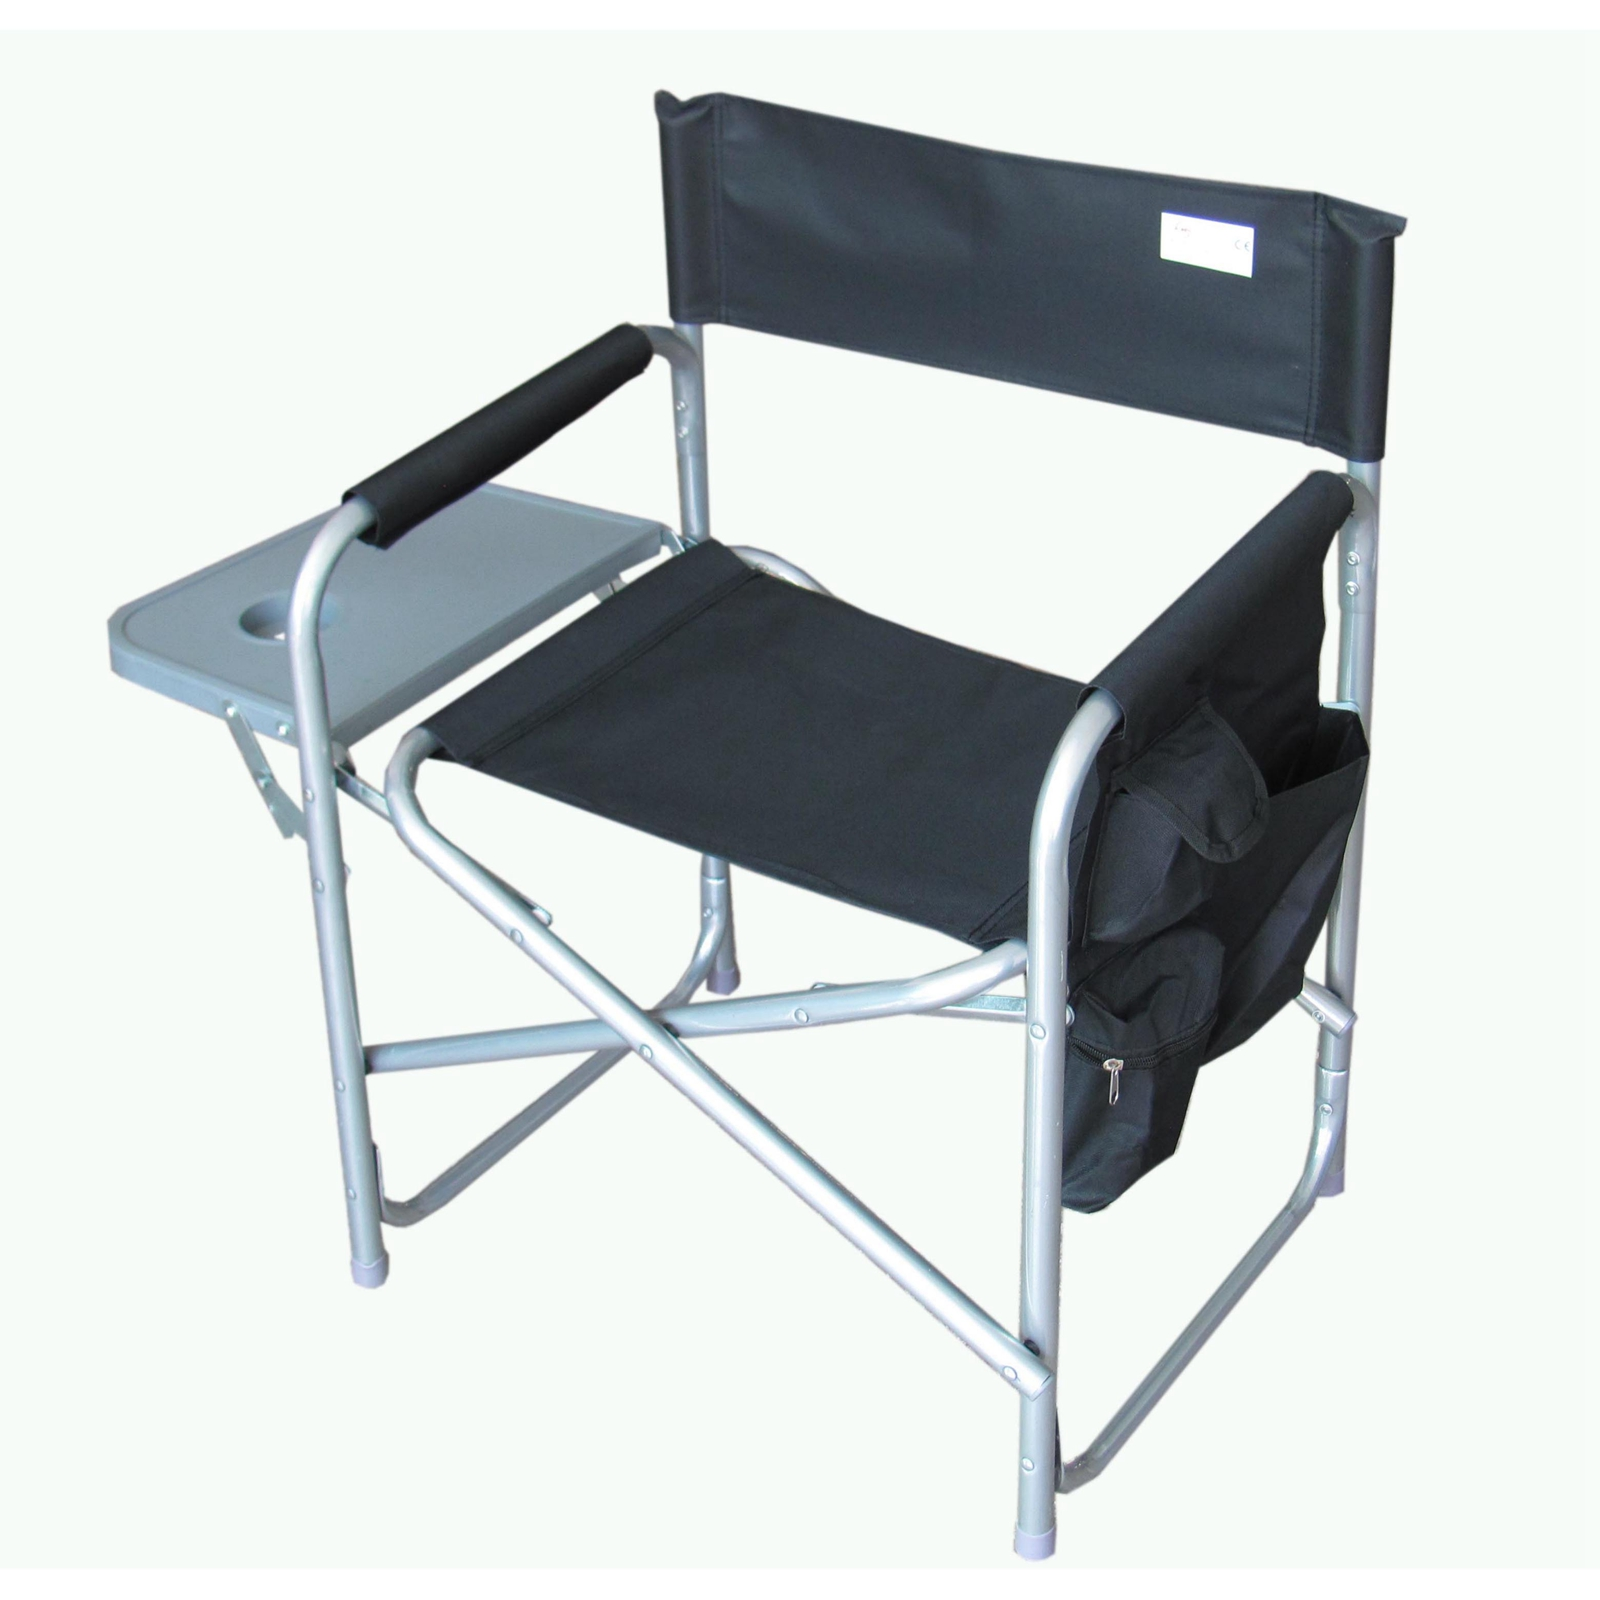 Outdoor Folding Chairs Portable Folding Fishing Chair Camping Outdoor Garden Seat